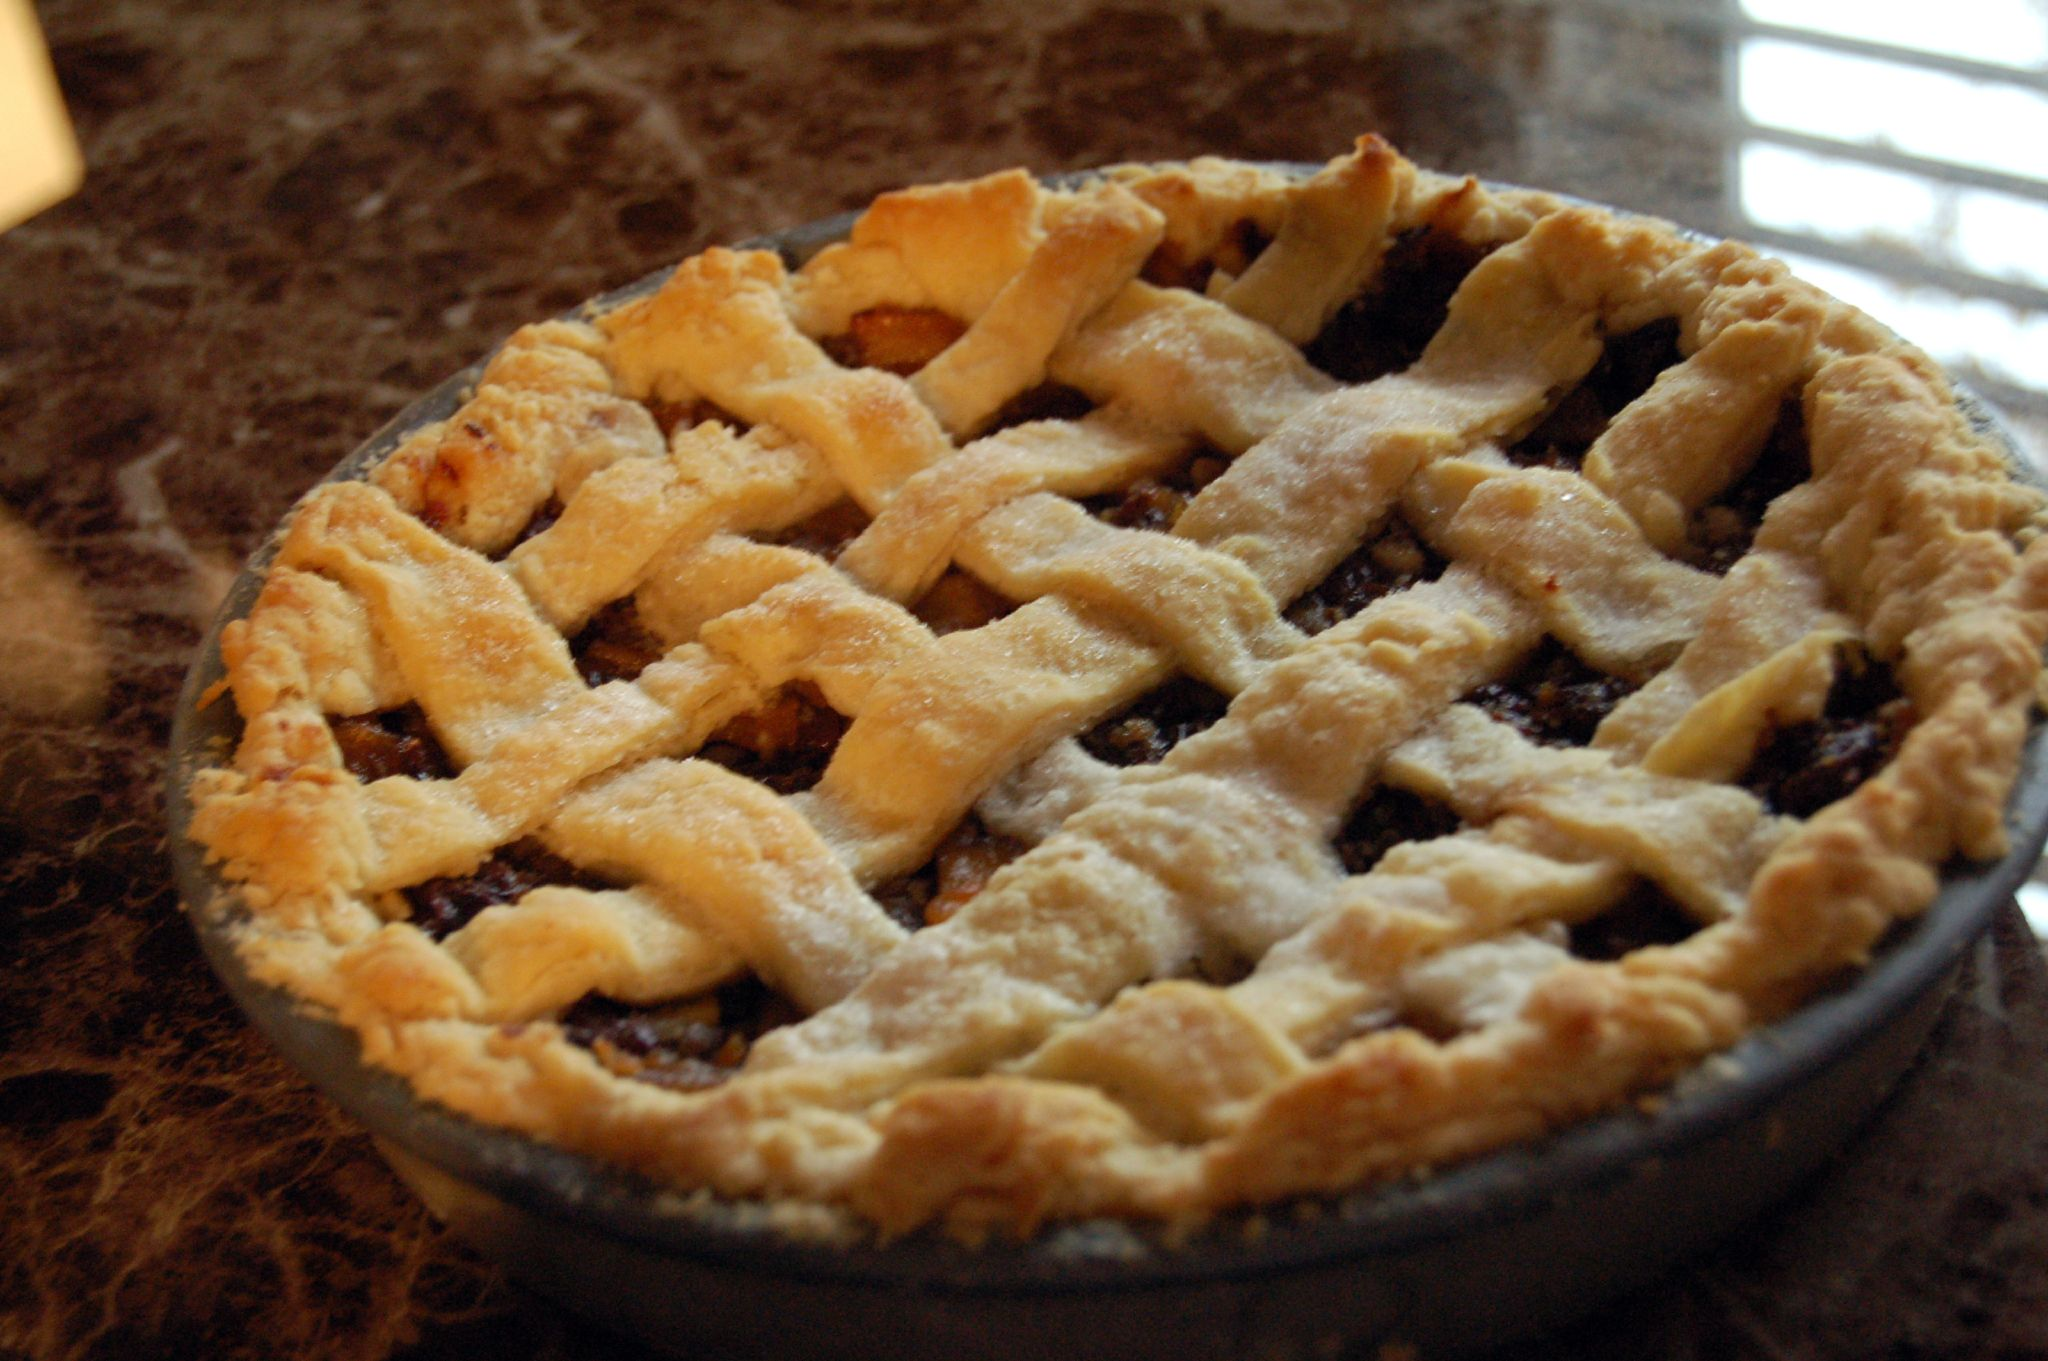 Our homemade (mock) mincemeat pie | Flickr - Photo Sharing!